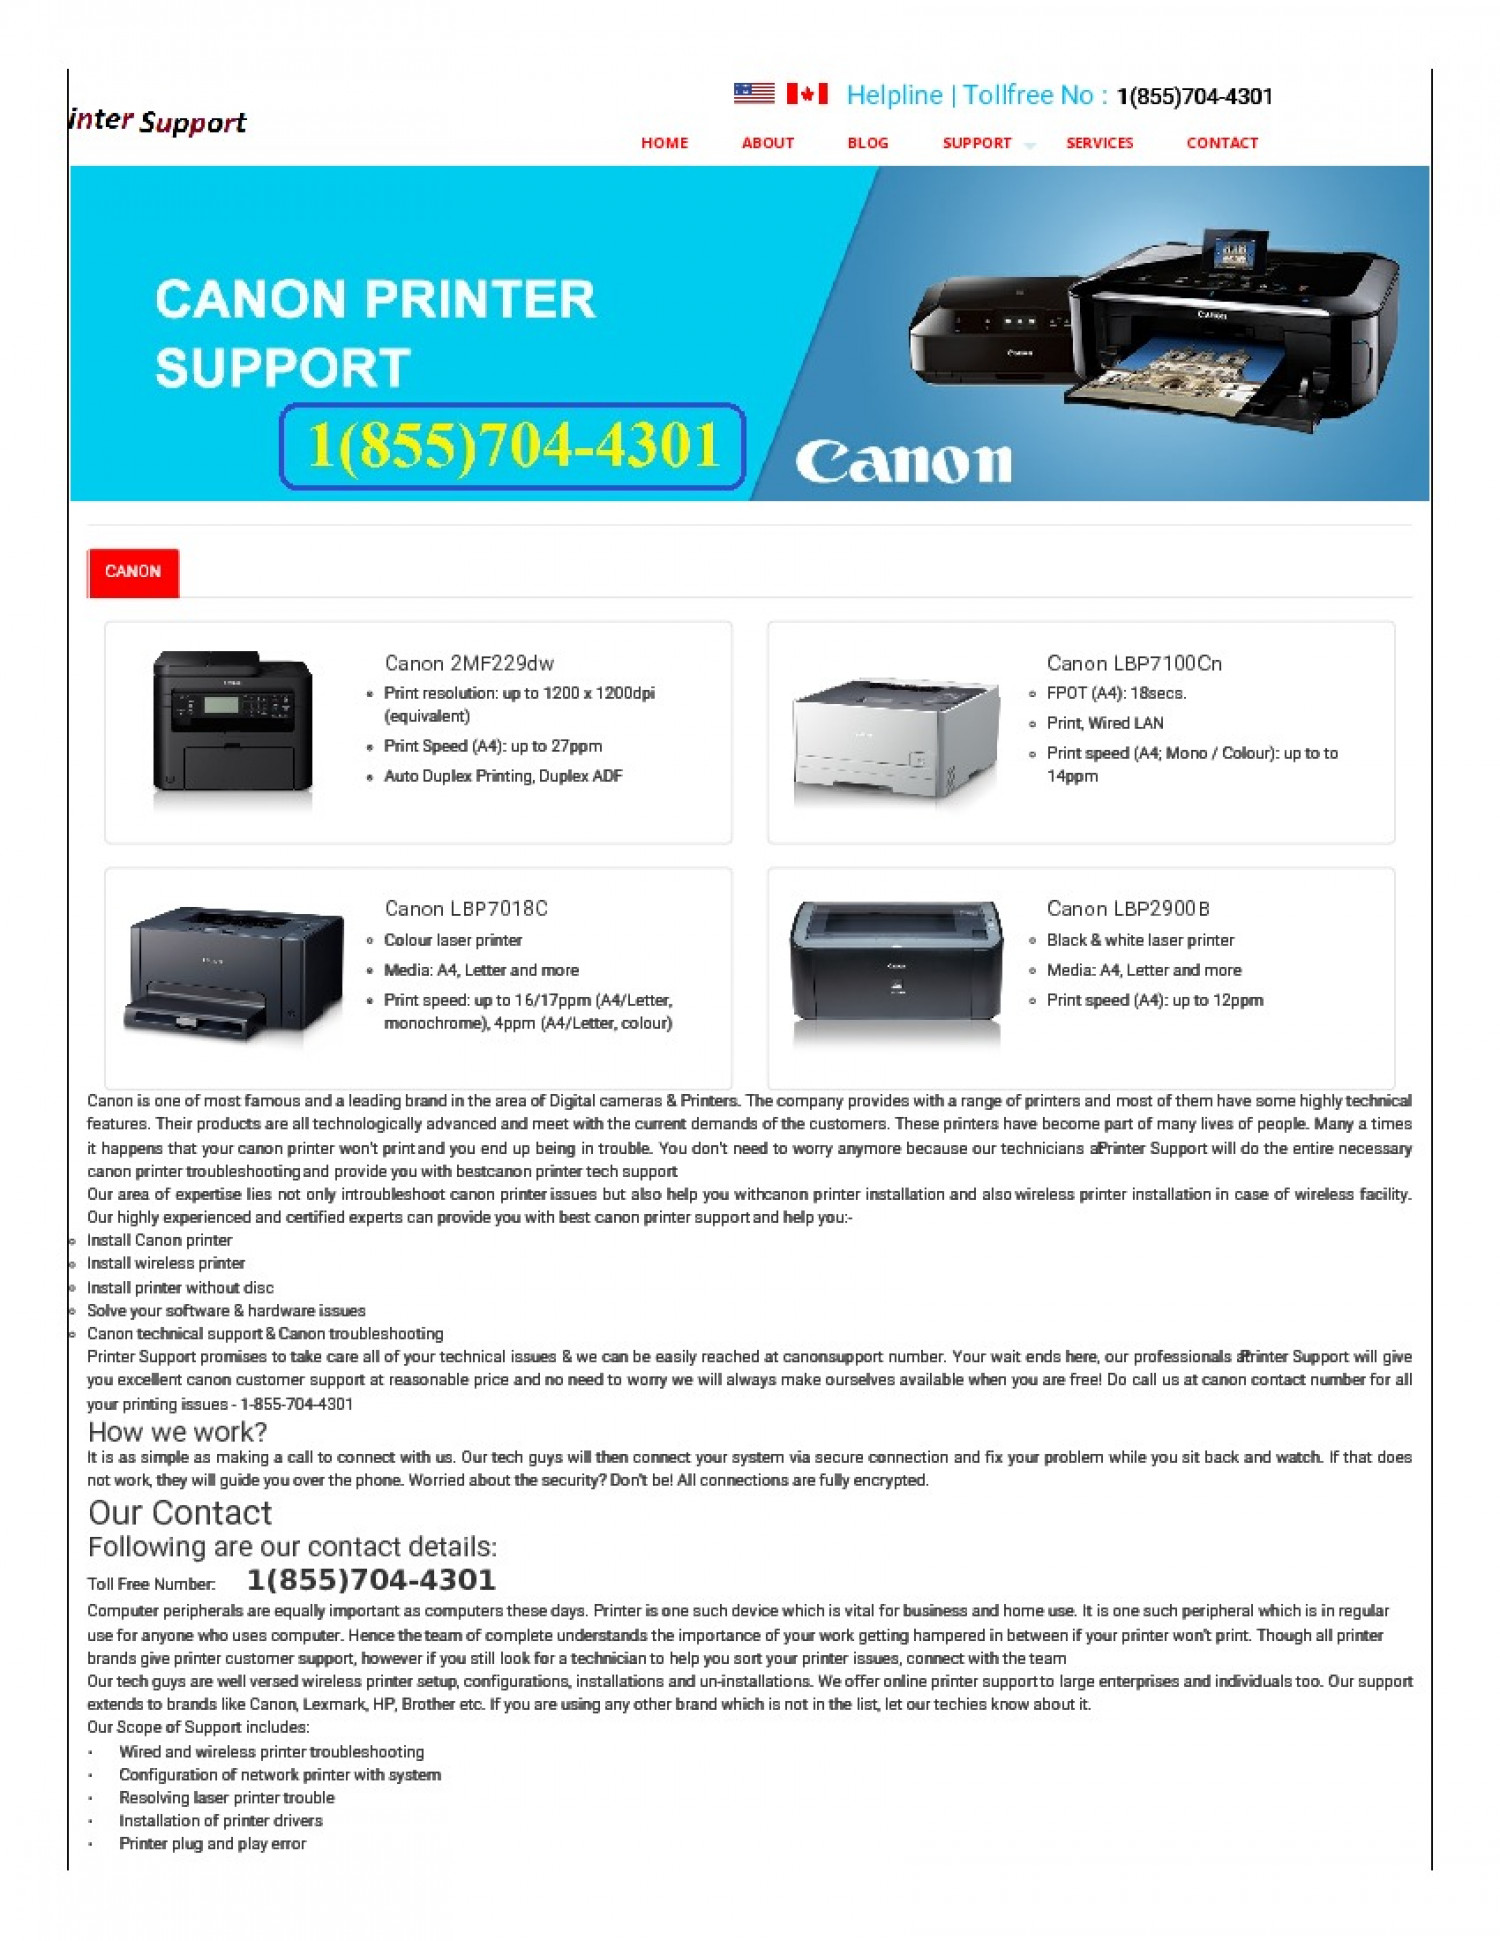 Canon Printer Toll Free Number : 1(855)704-4301 Infographic